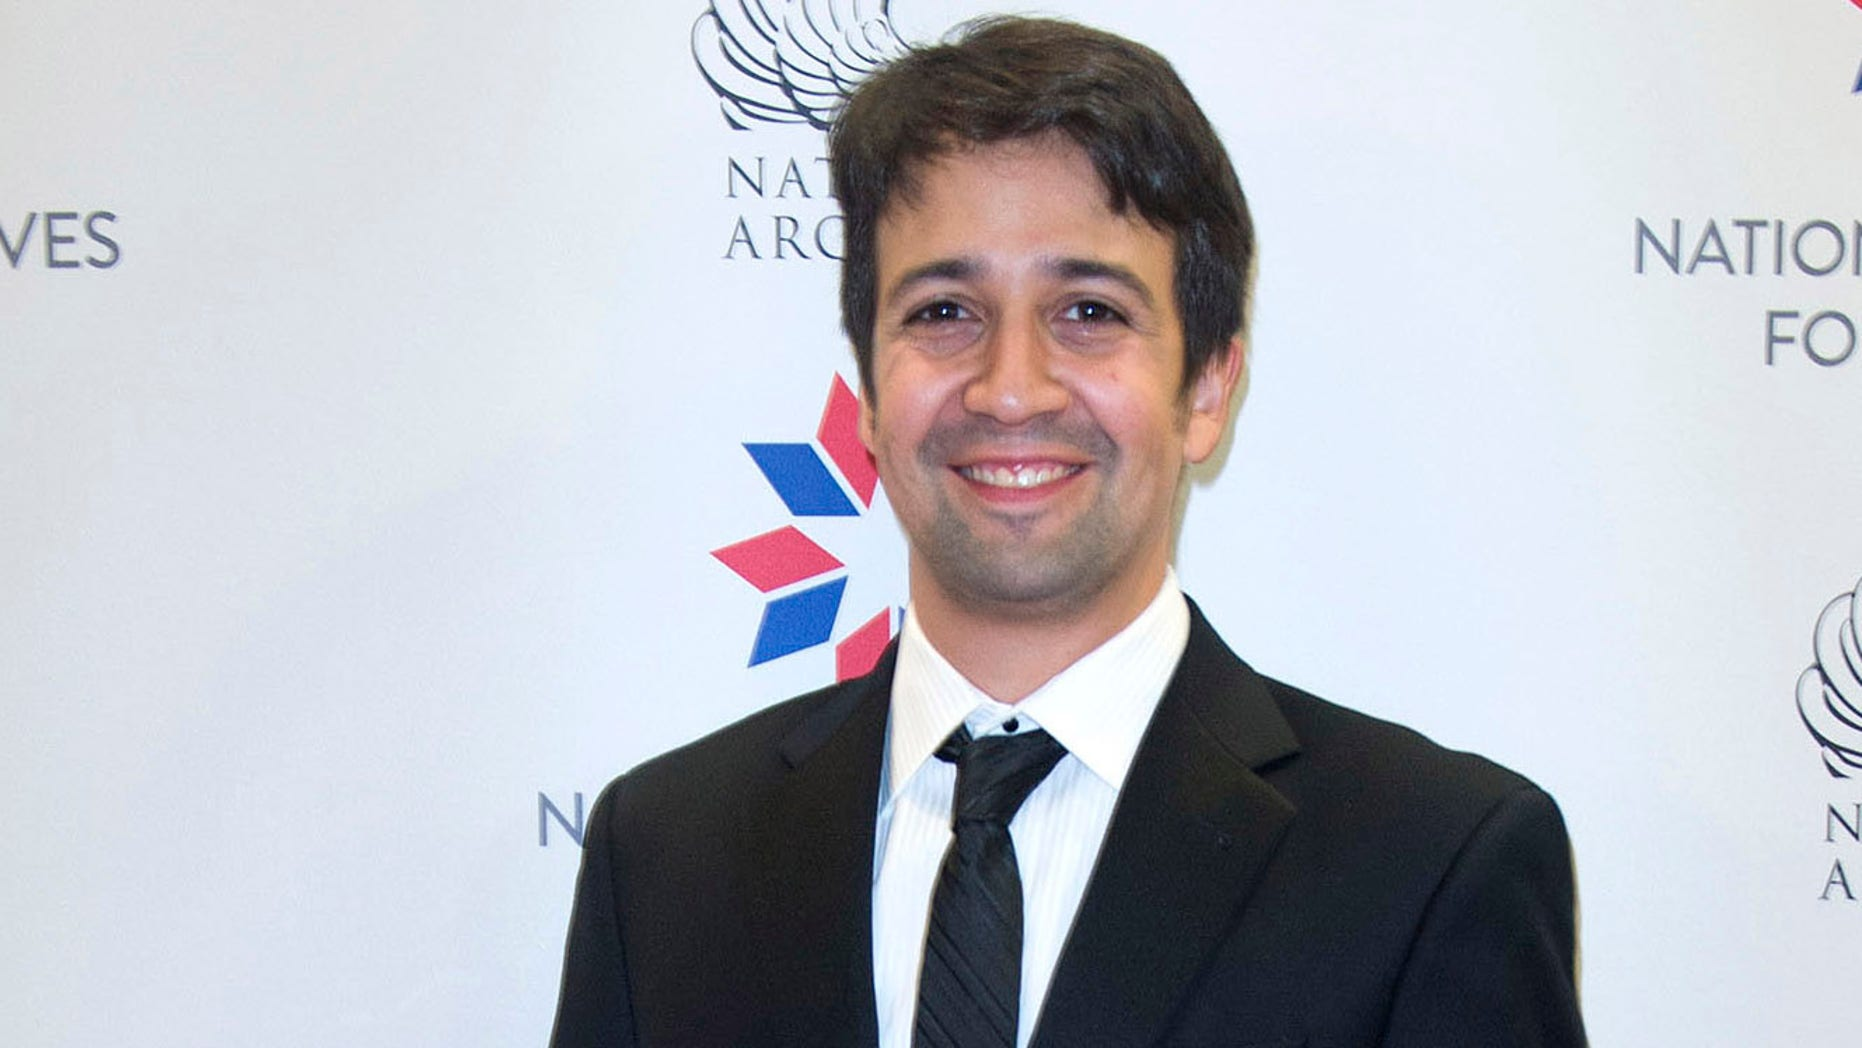 """WASHINGTON, DC - SEPTEMBER 25: Playwright, lyricist, composer and actor Lin-Manuel Miranda arrives at the National Archives Foundation Honors """"Hamilton's"""" Lin-Manuel Miranda, Thomas Kail & Ron Chernow at the National Archives Museum on September 25, 2016 in Washington, DC.  (Photo by Leigh Vogel/Getty Images for National Archives Foundation)"""